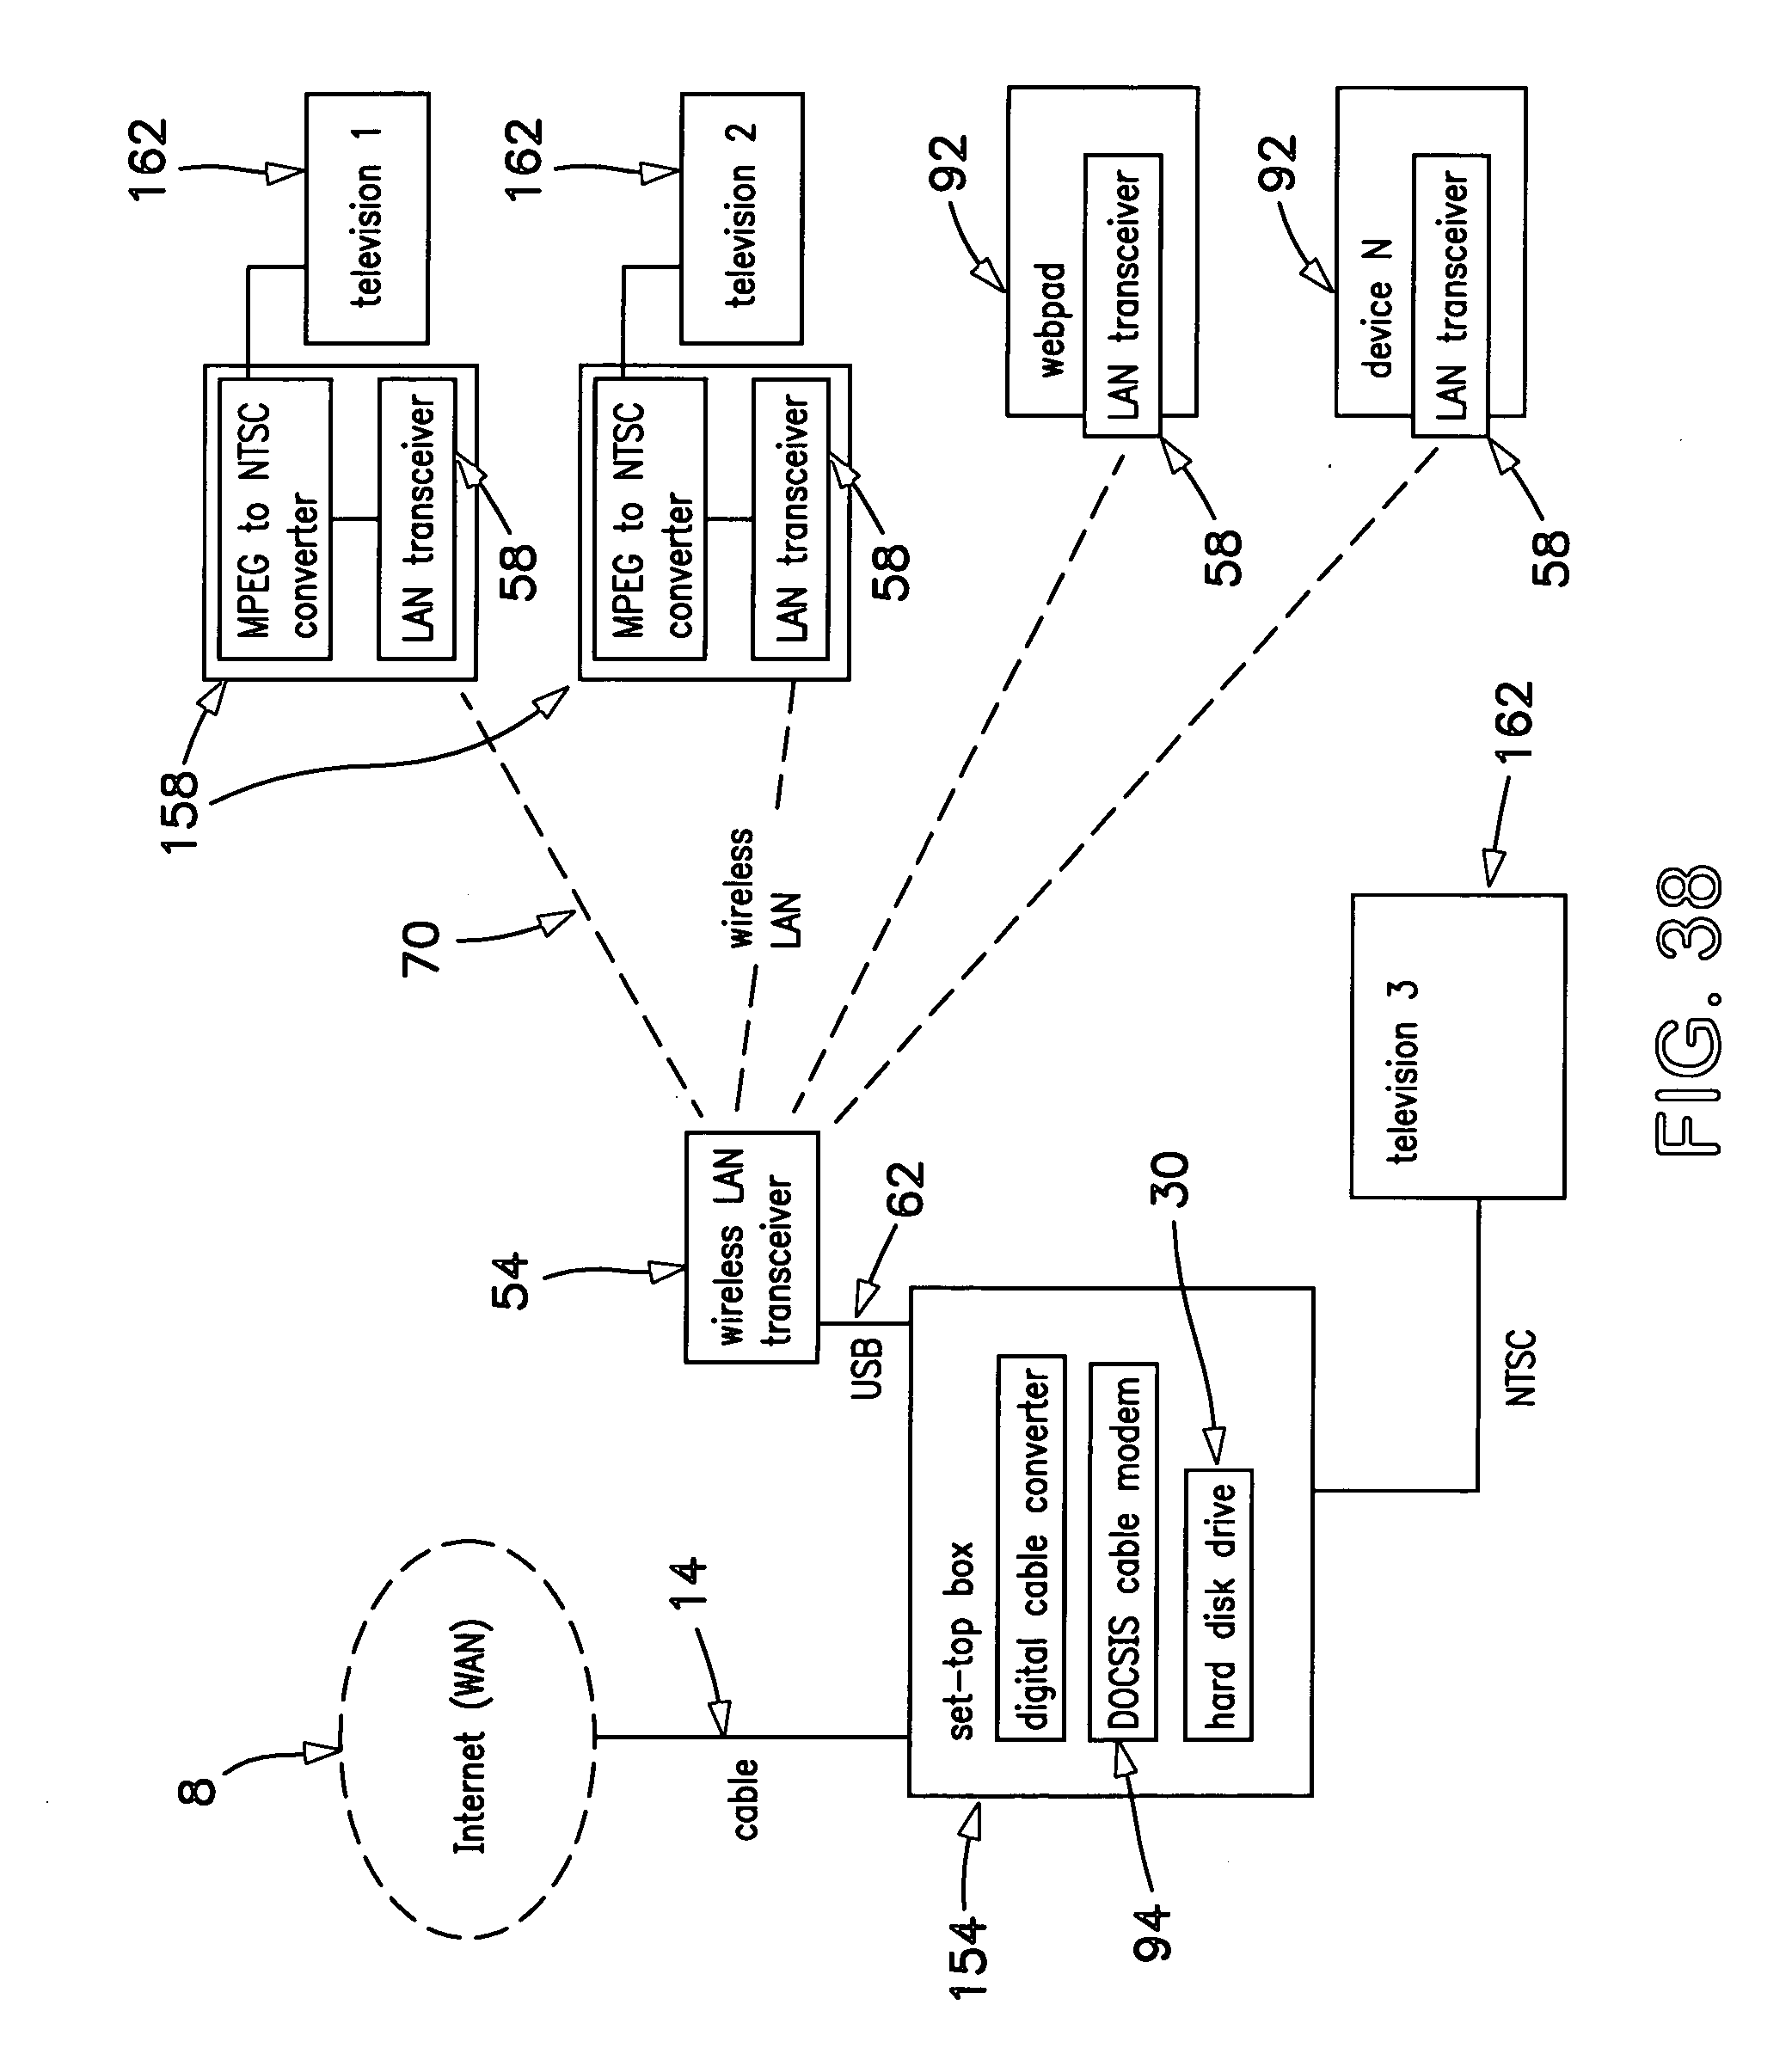 Patent Us 7130616 B2 Diagram Likewise Cable Modem Router Also At T Wireless U Verse Litigations